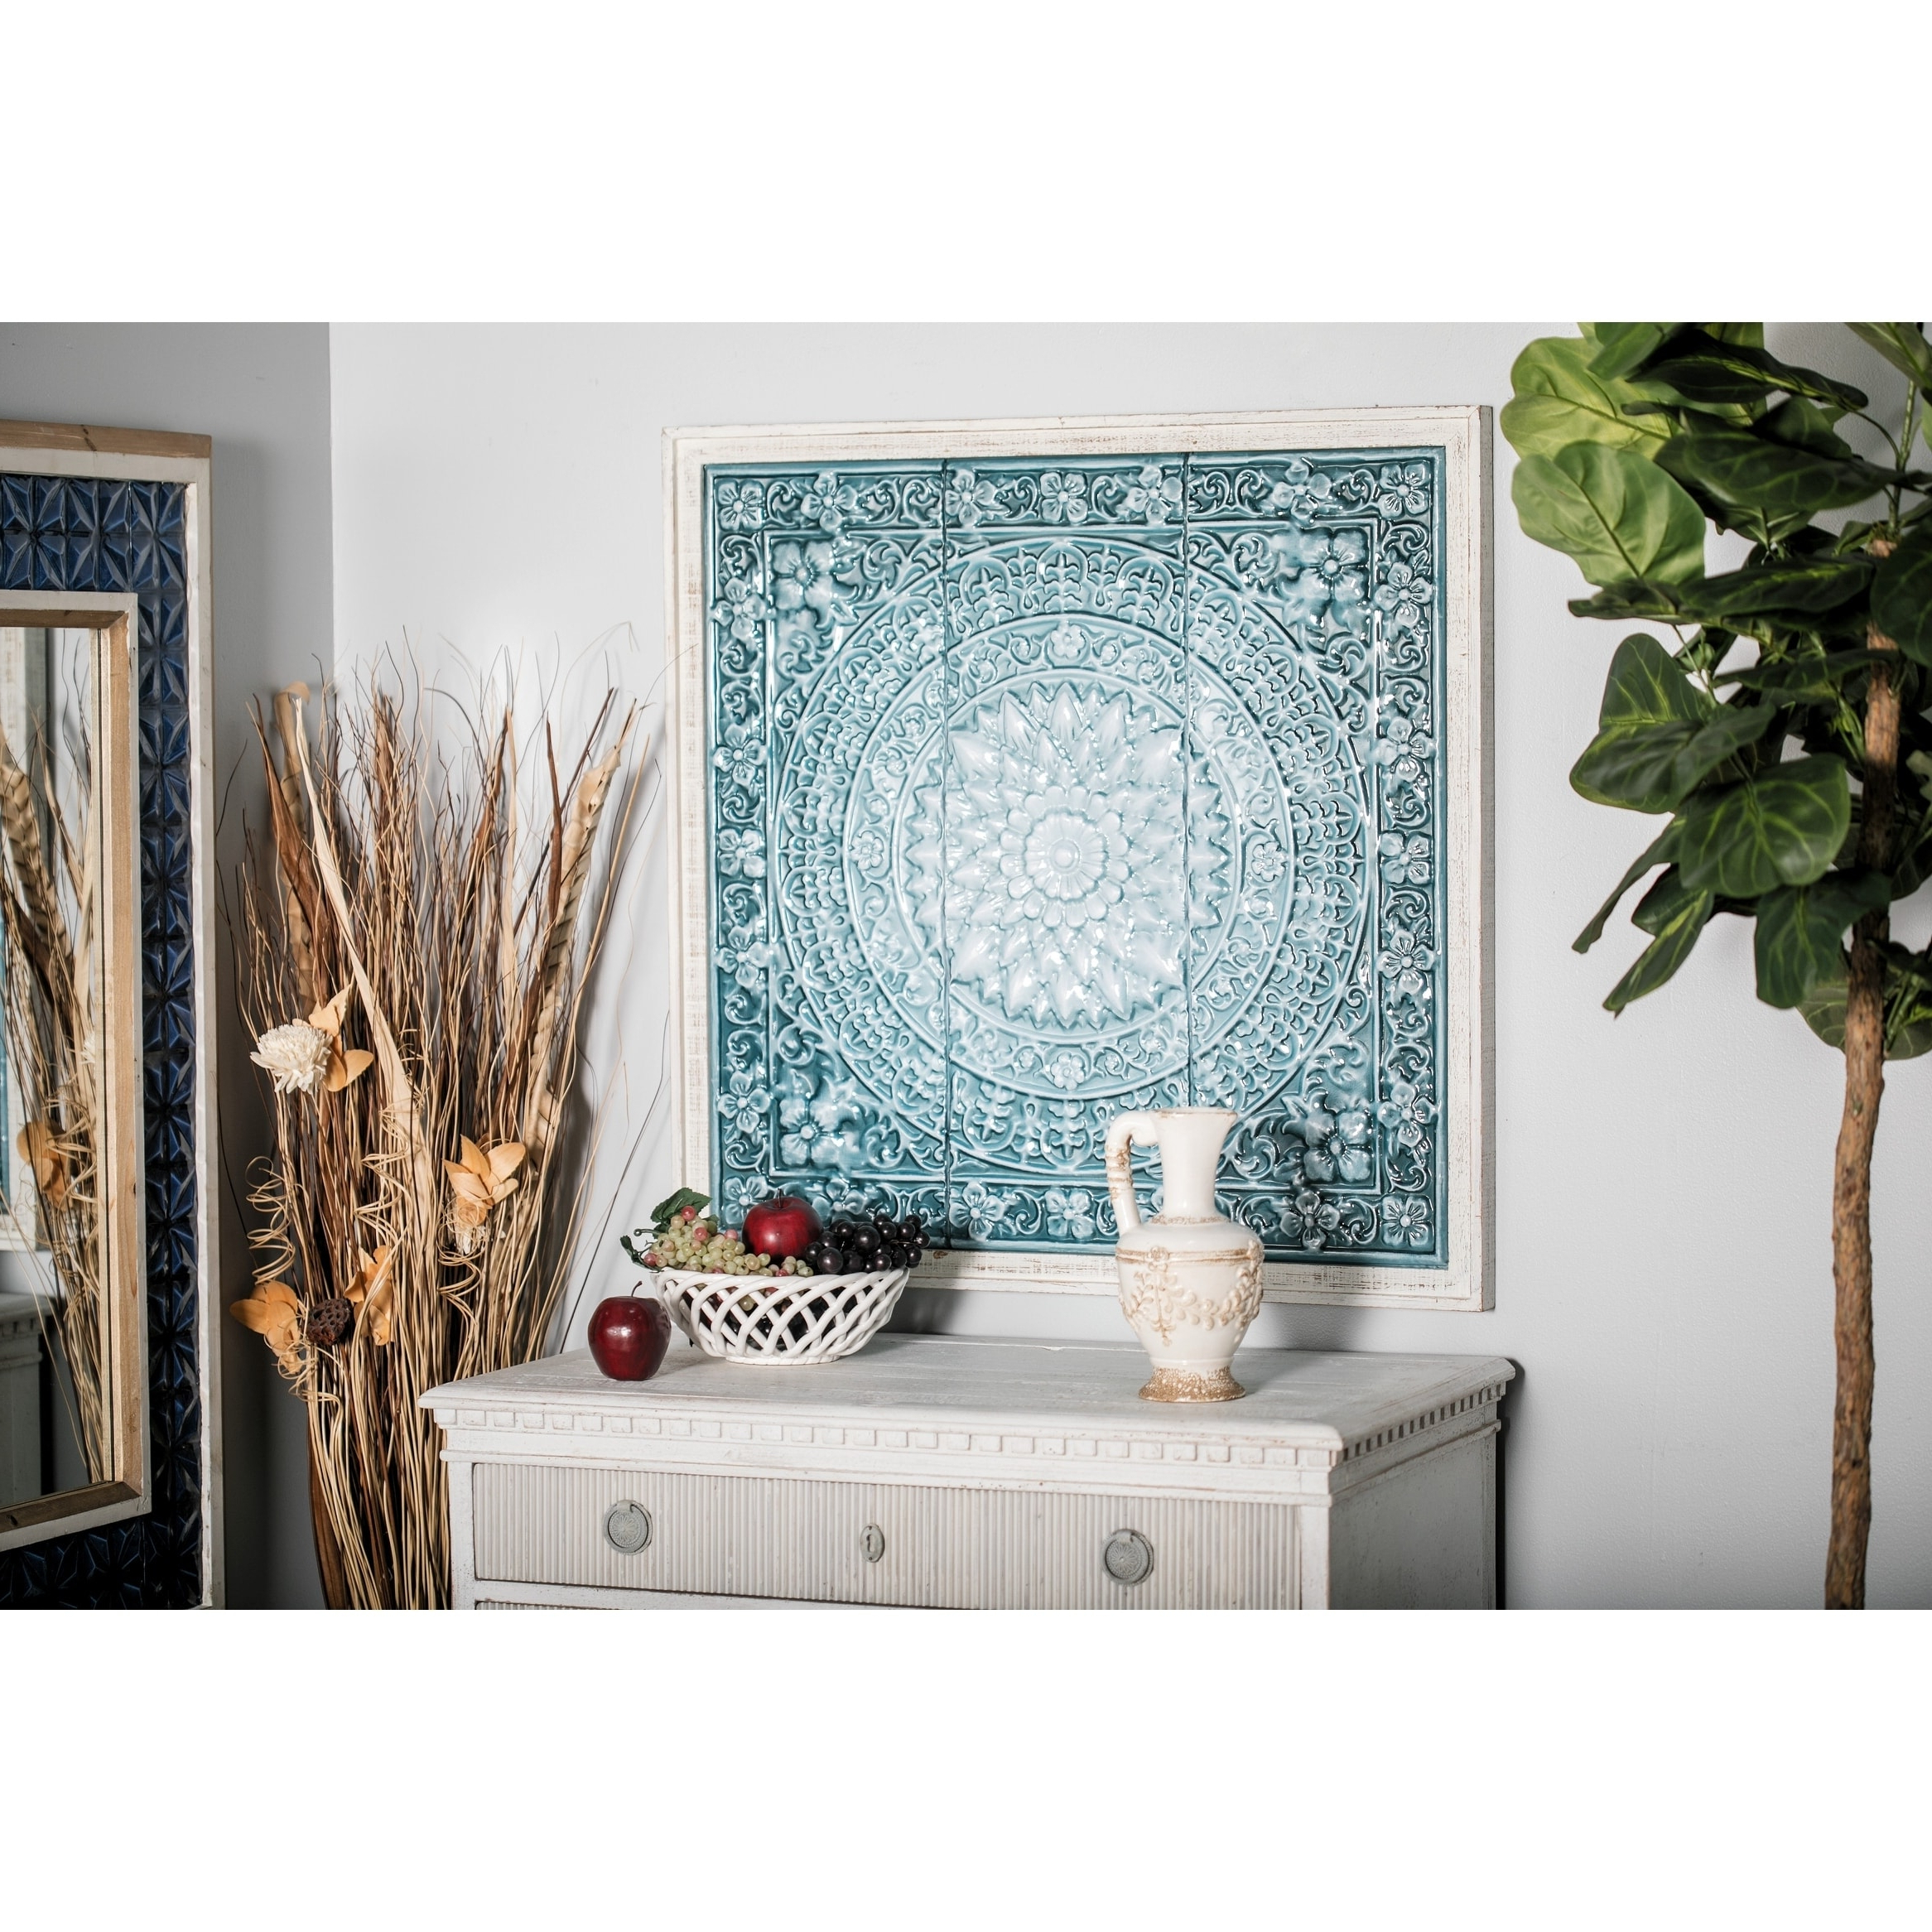 Famous Rustic 34 X 33 Inch Off White And Teal Floral Wall Decor With Ceramic Rustic Wall Décor (View 12 of 20)